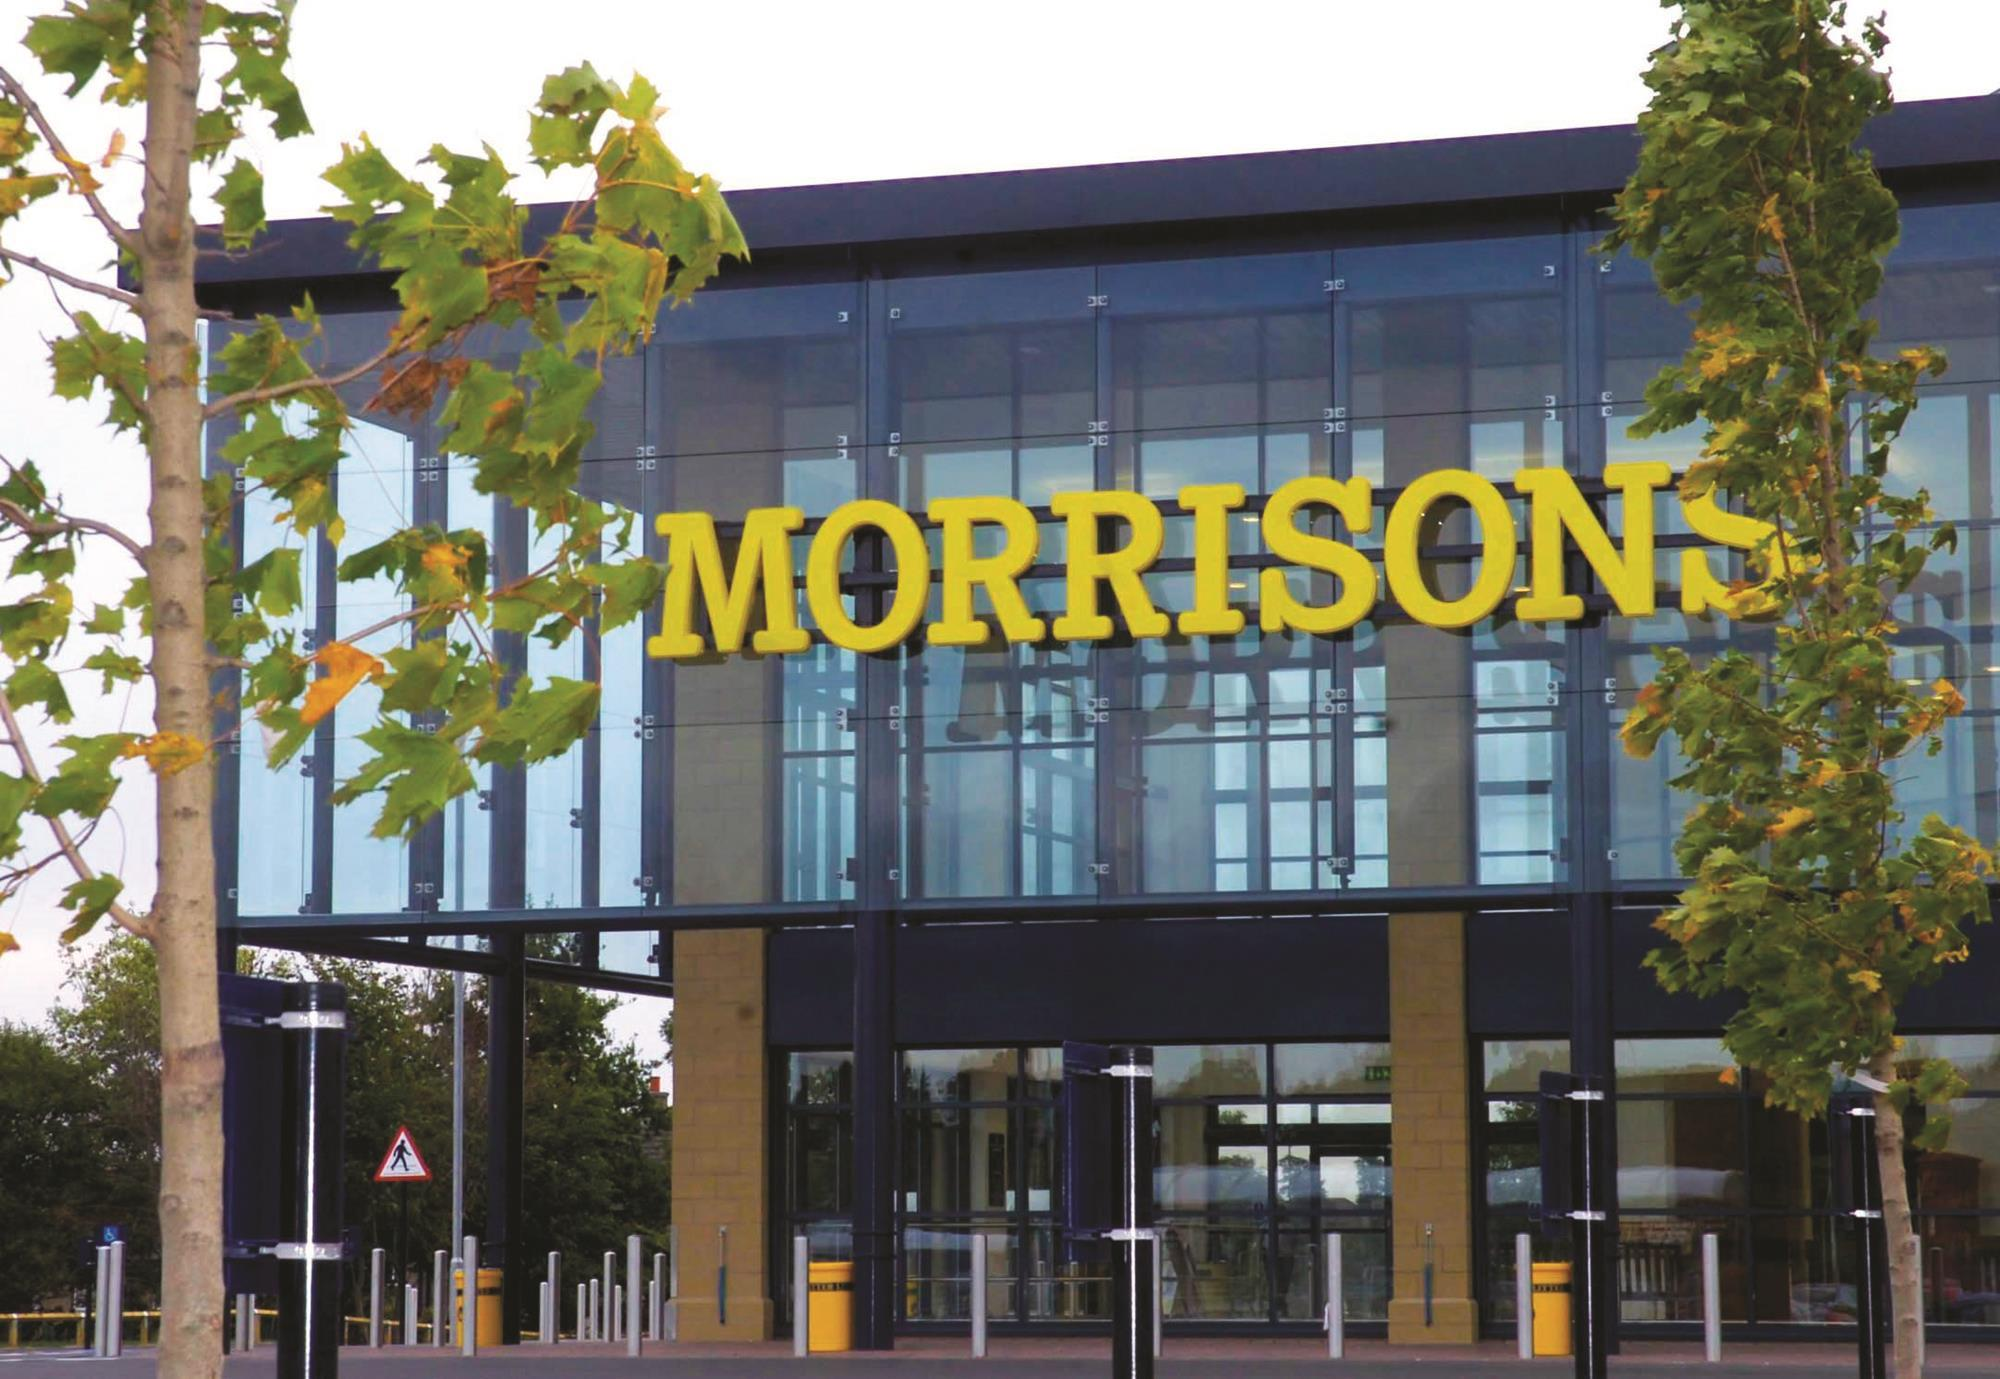 What're the main aims of Morrisons supermarket?